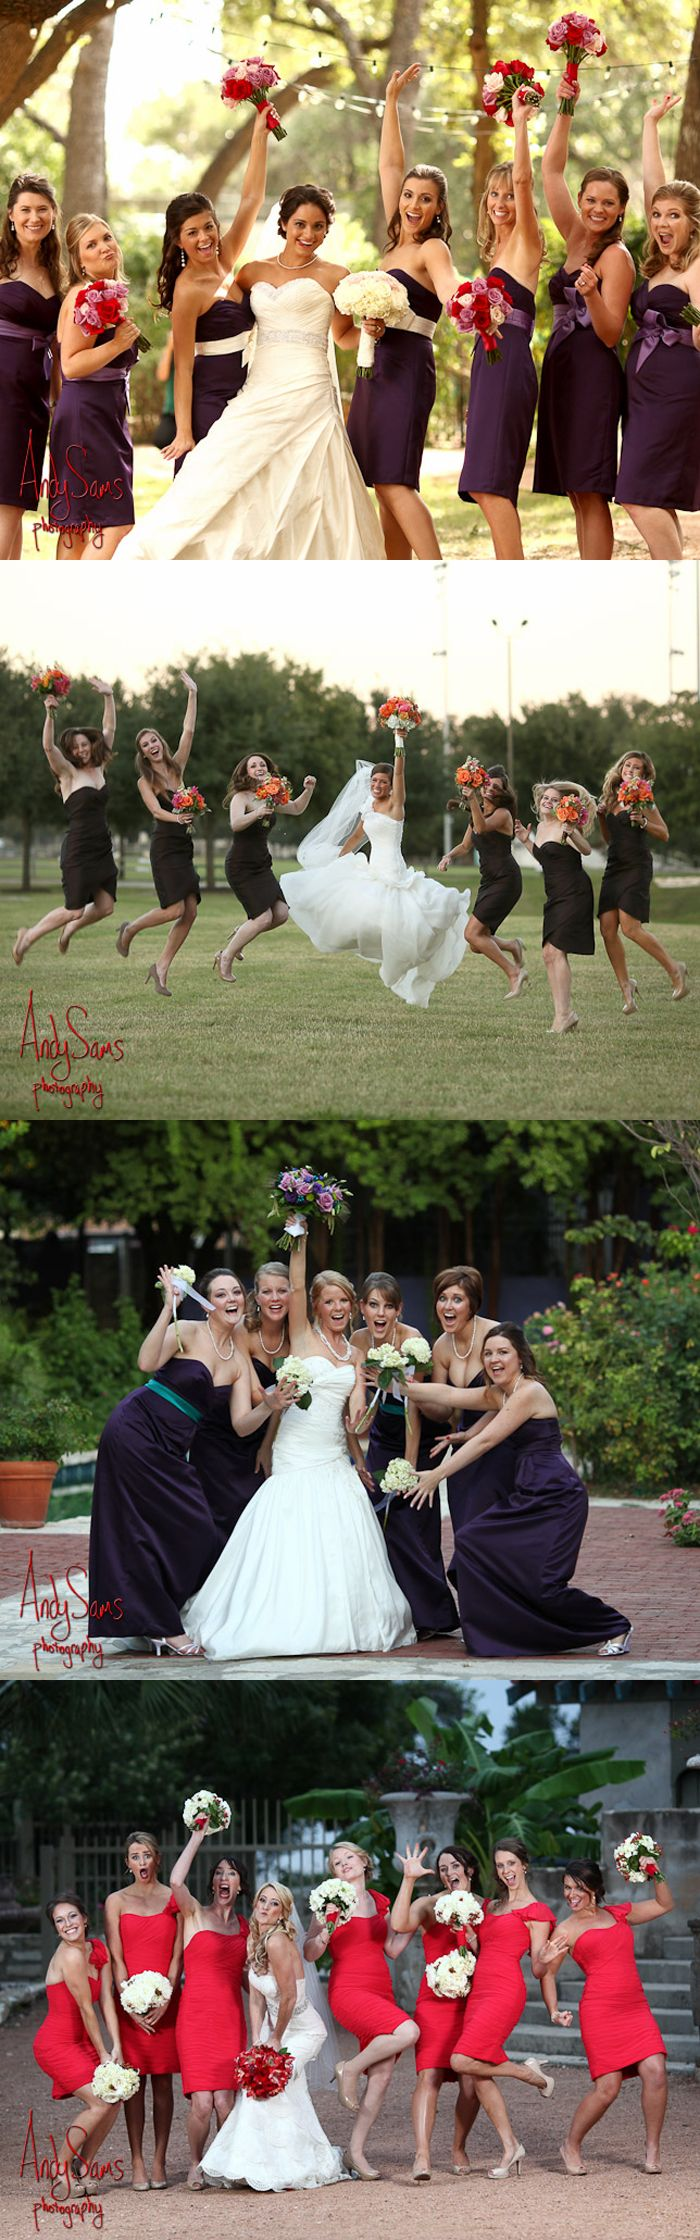 wedding photography pose ideas for edgy | Bridesmaids Photo Ideas | Austin Wedding Ideas